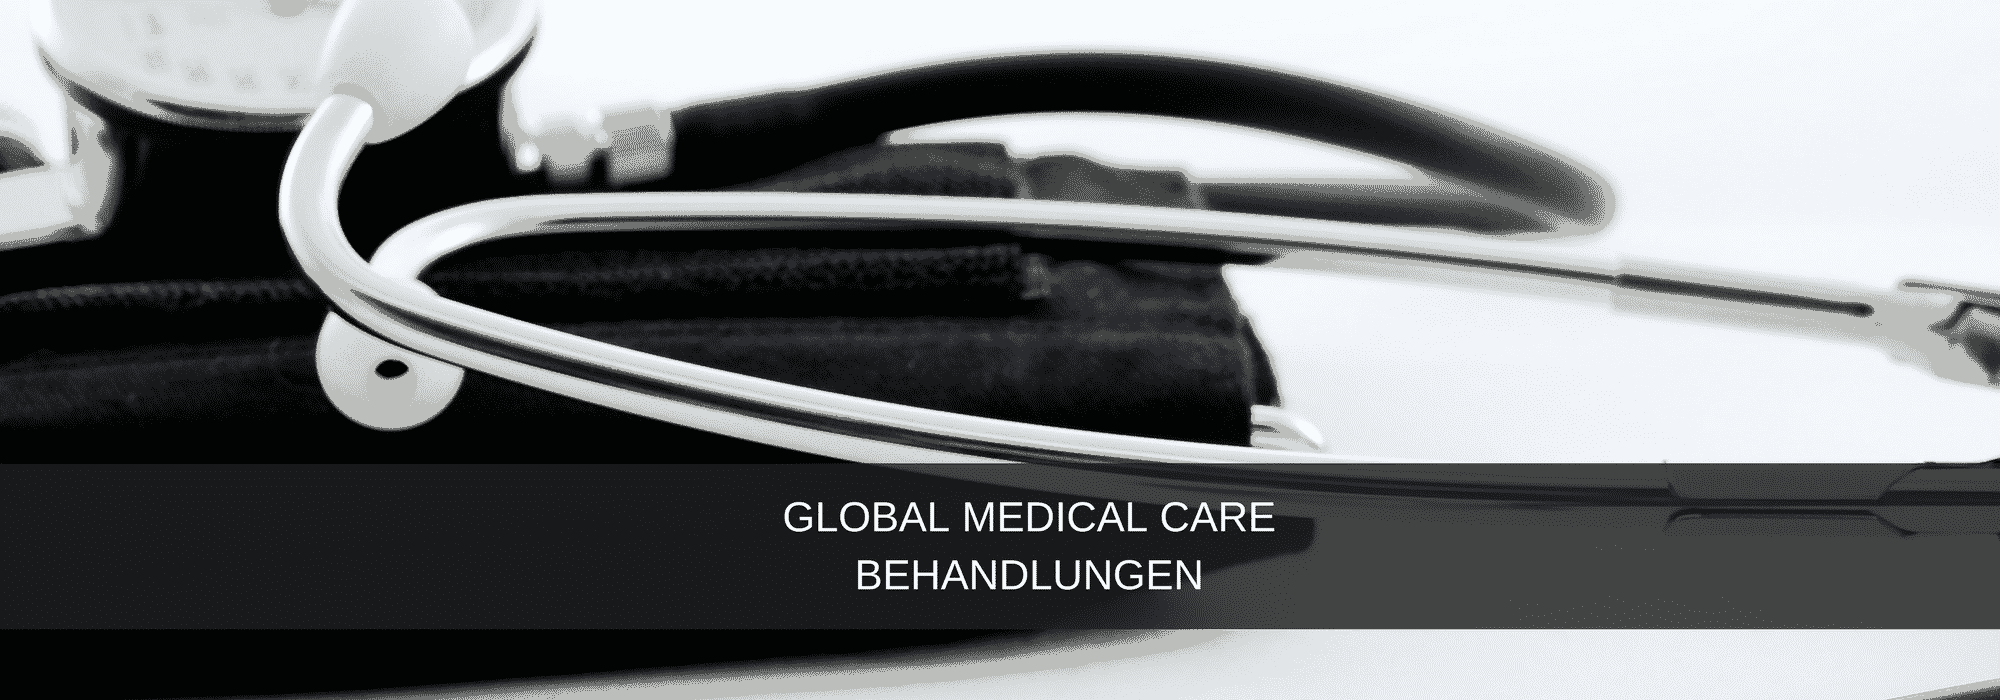 Behandlungen - Global Medical Care®